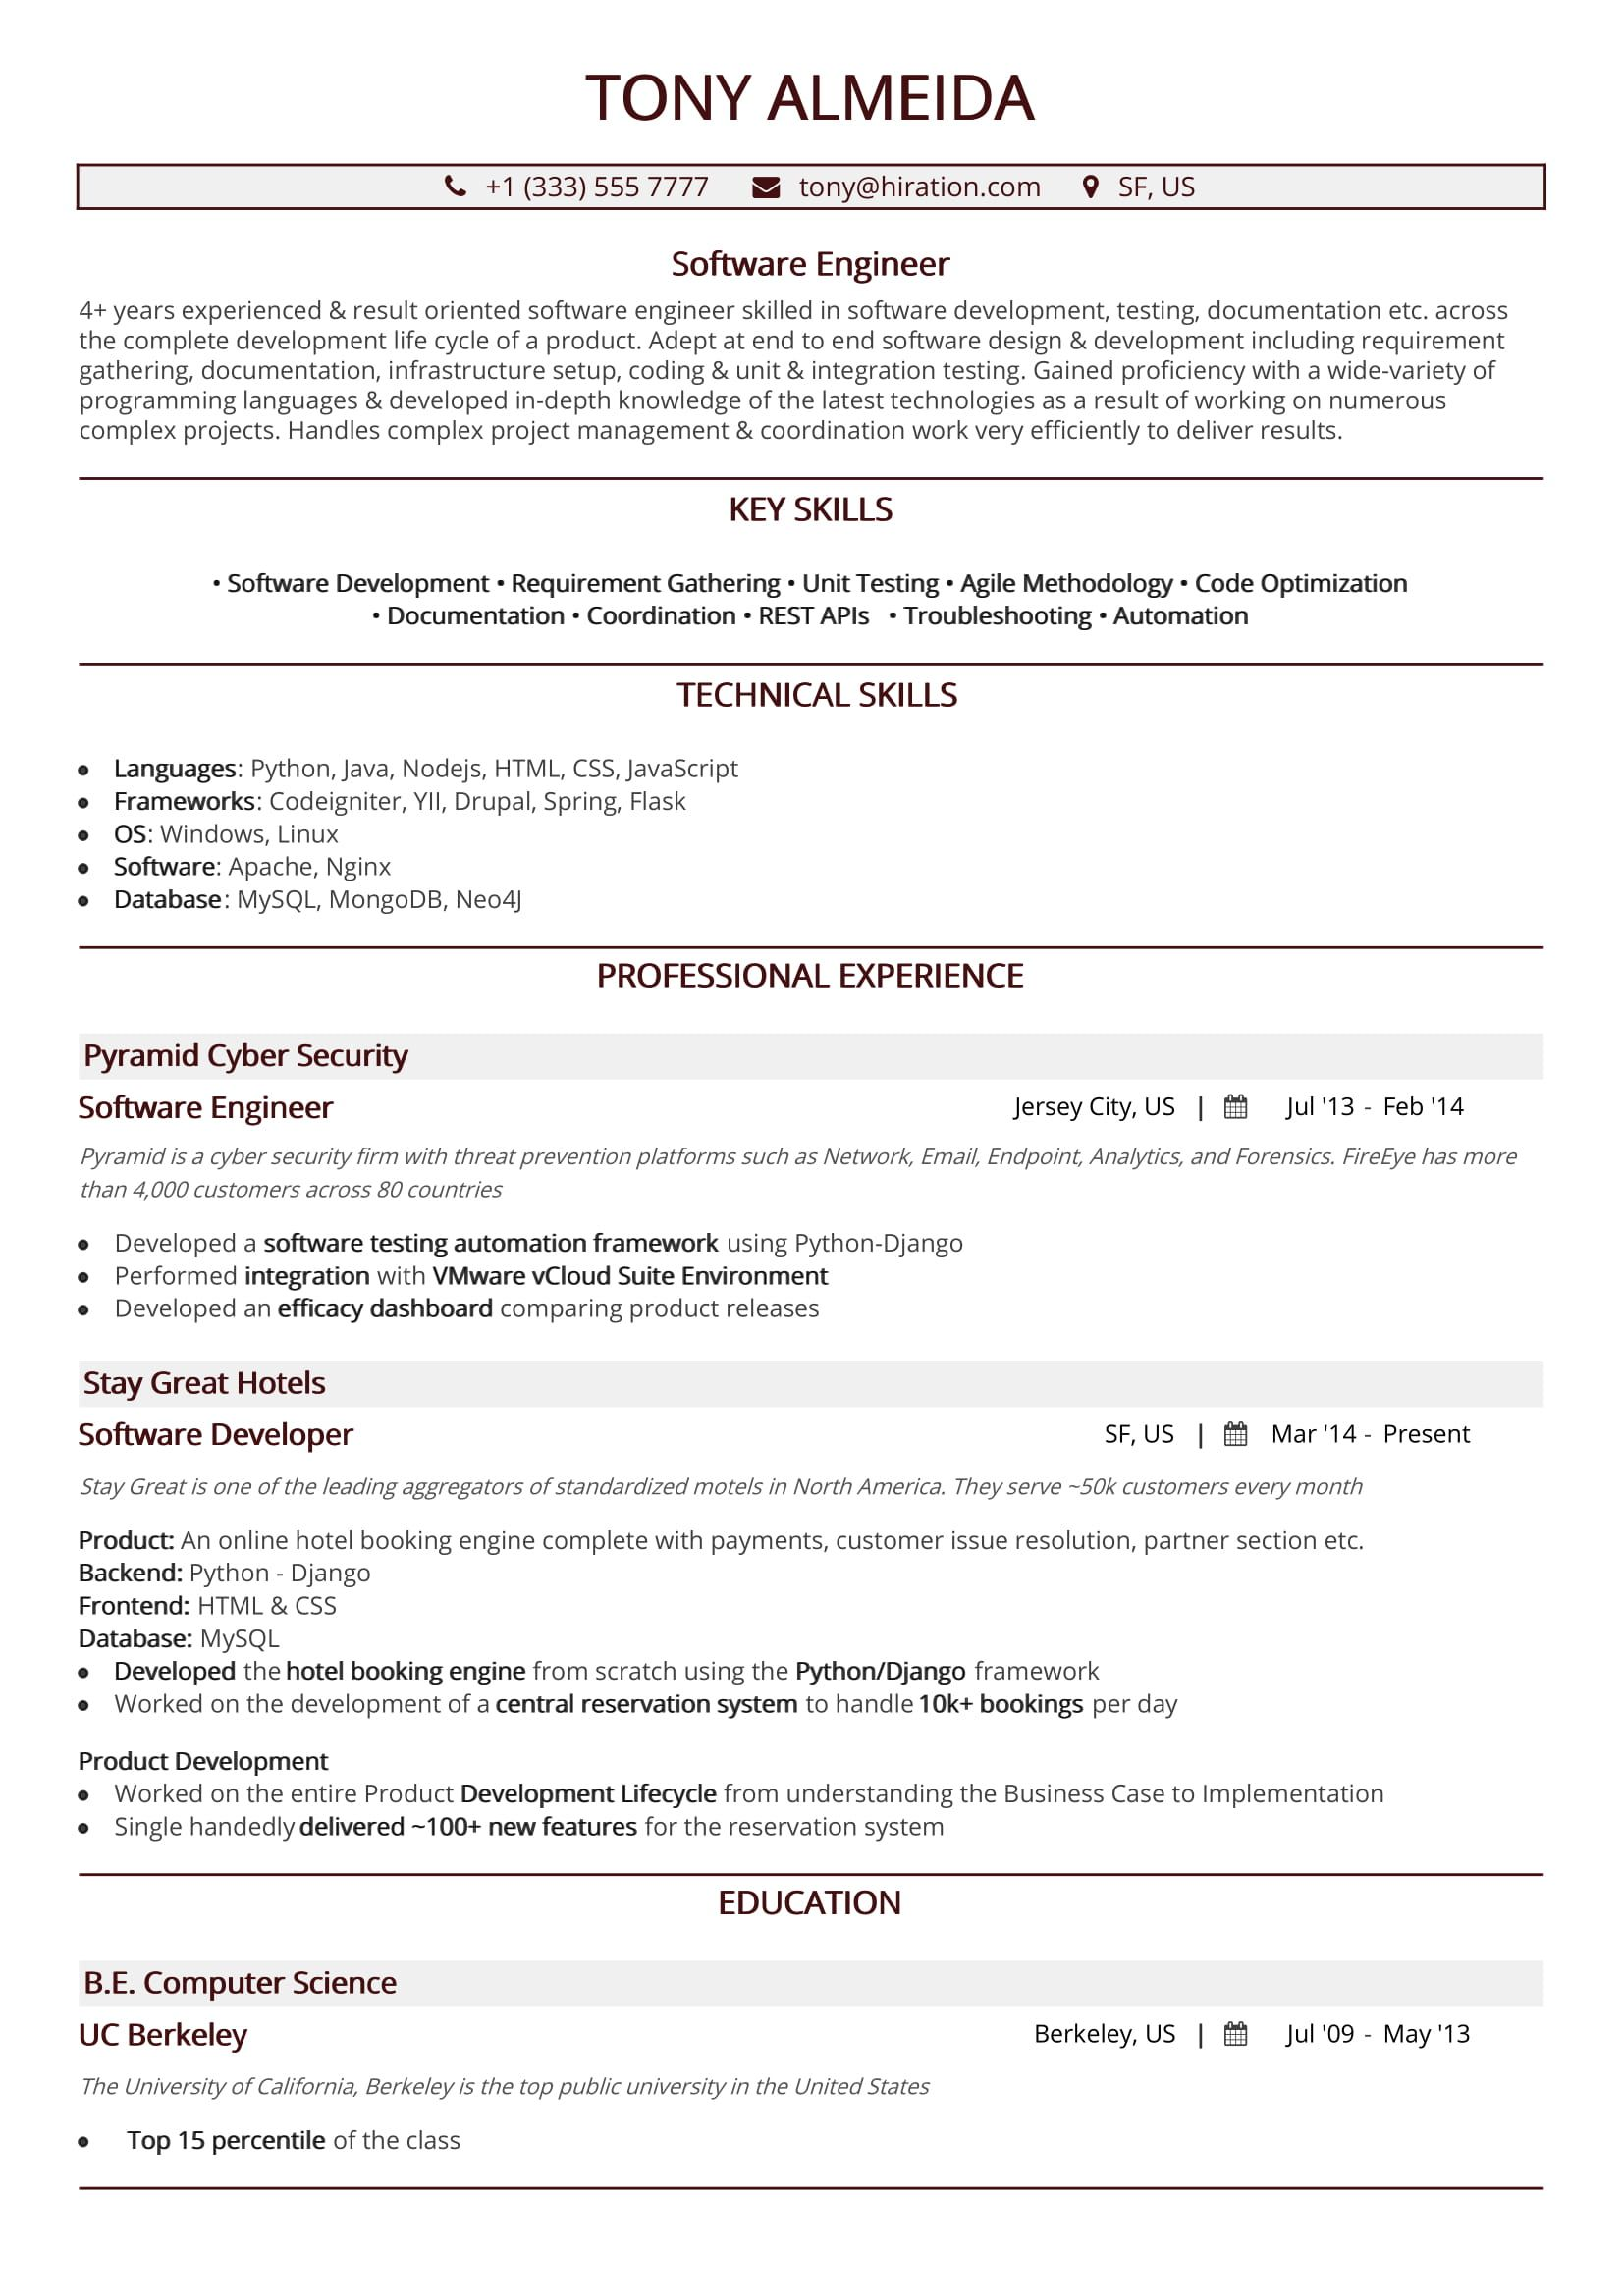 Software Engineer Resume A 10 Step 2019 Guide With 20 Samples